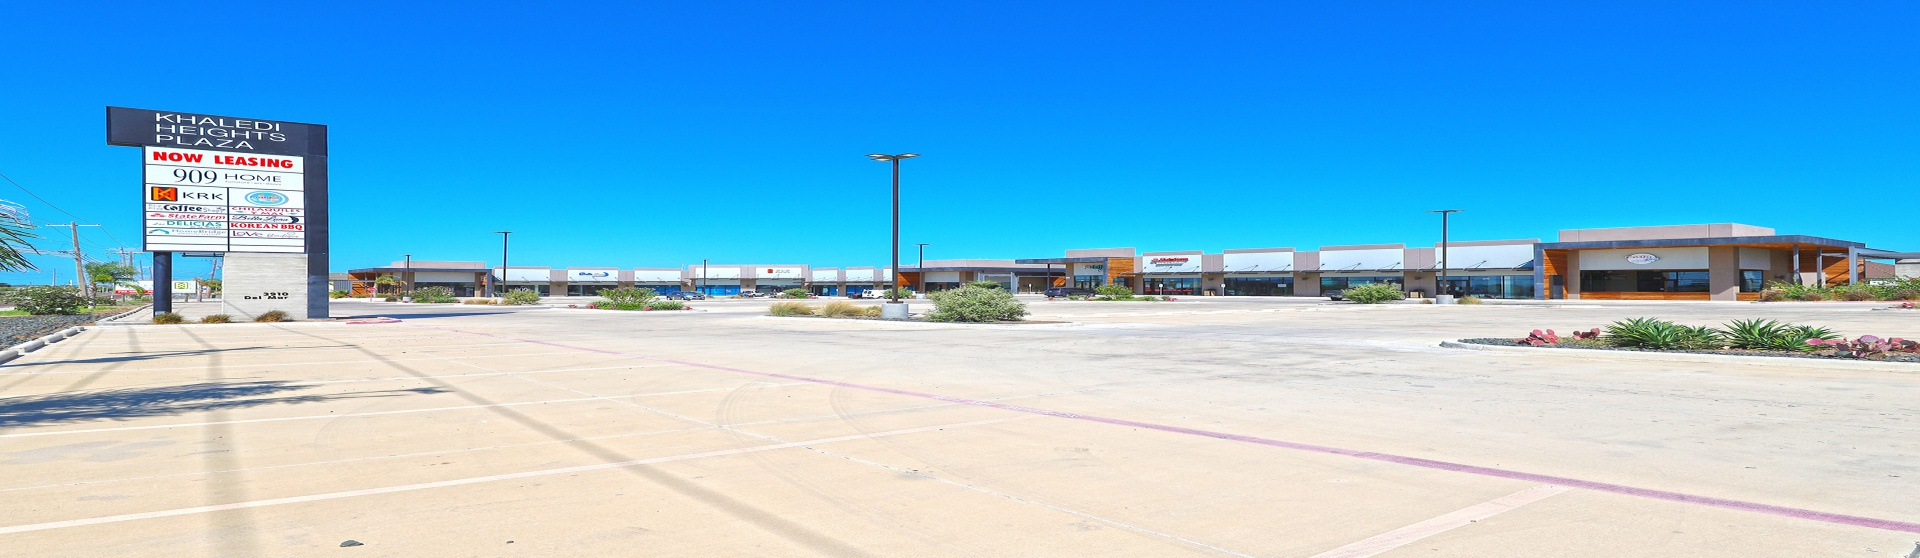 3910 Del mar,Laredo,Texas,Commercial retail/office,3910 Del mar,10000020092